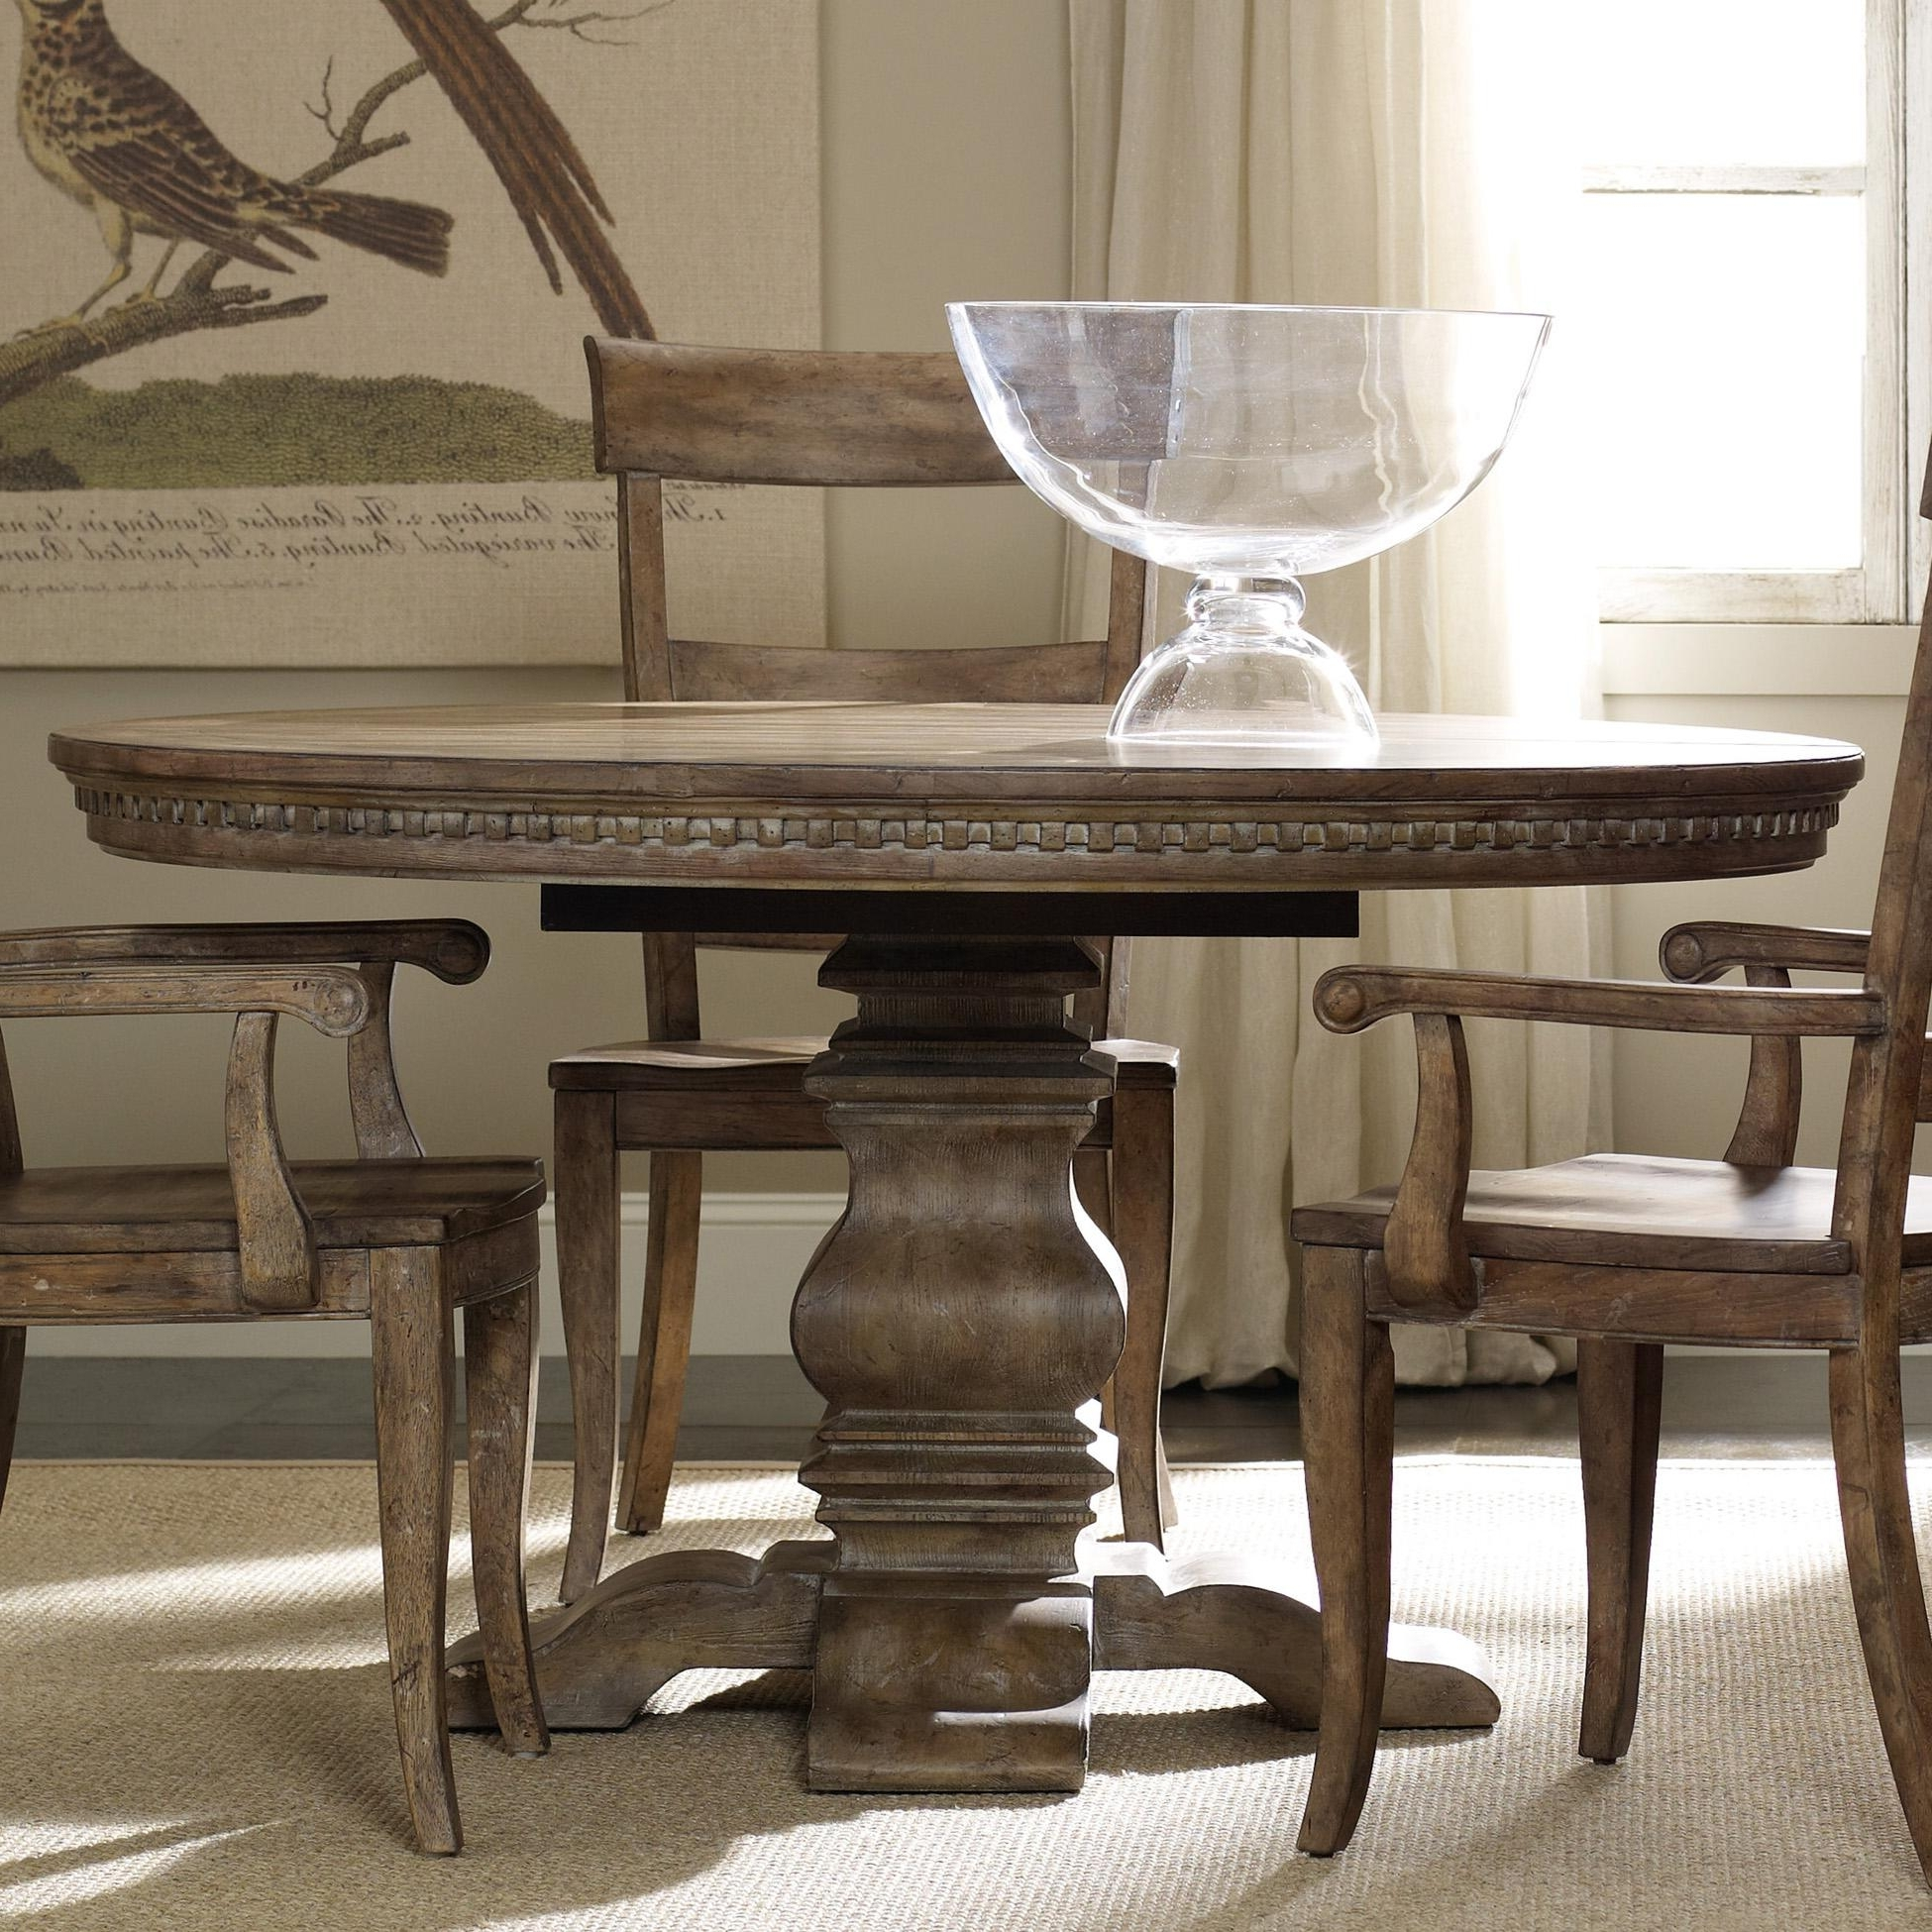 Extending Rectangular Dining Tables Inside Most Popular Hamilton Home Sorella Round Dining Table With Pedestal Base And 20 (Gallery 9 of 25)